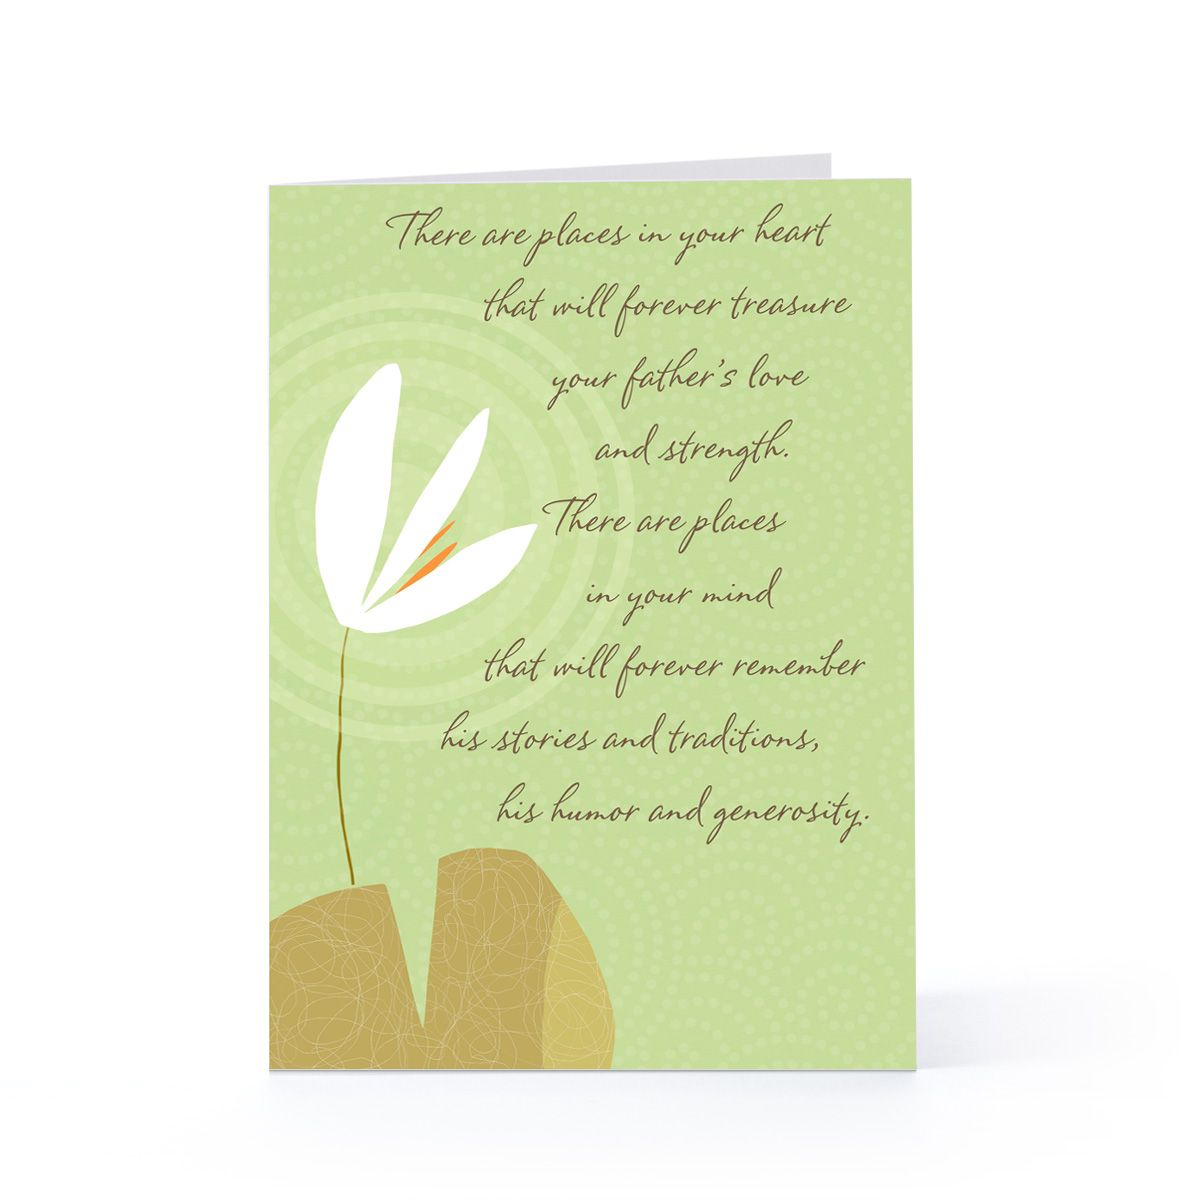 Hallmark bereavement cards google search store bought cards hallmark bereavement cards google search bookmarktalkfo Images